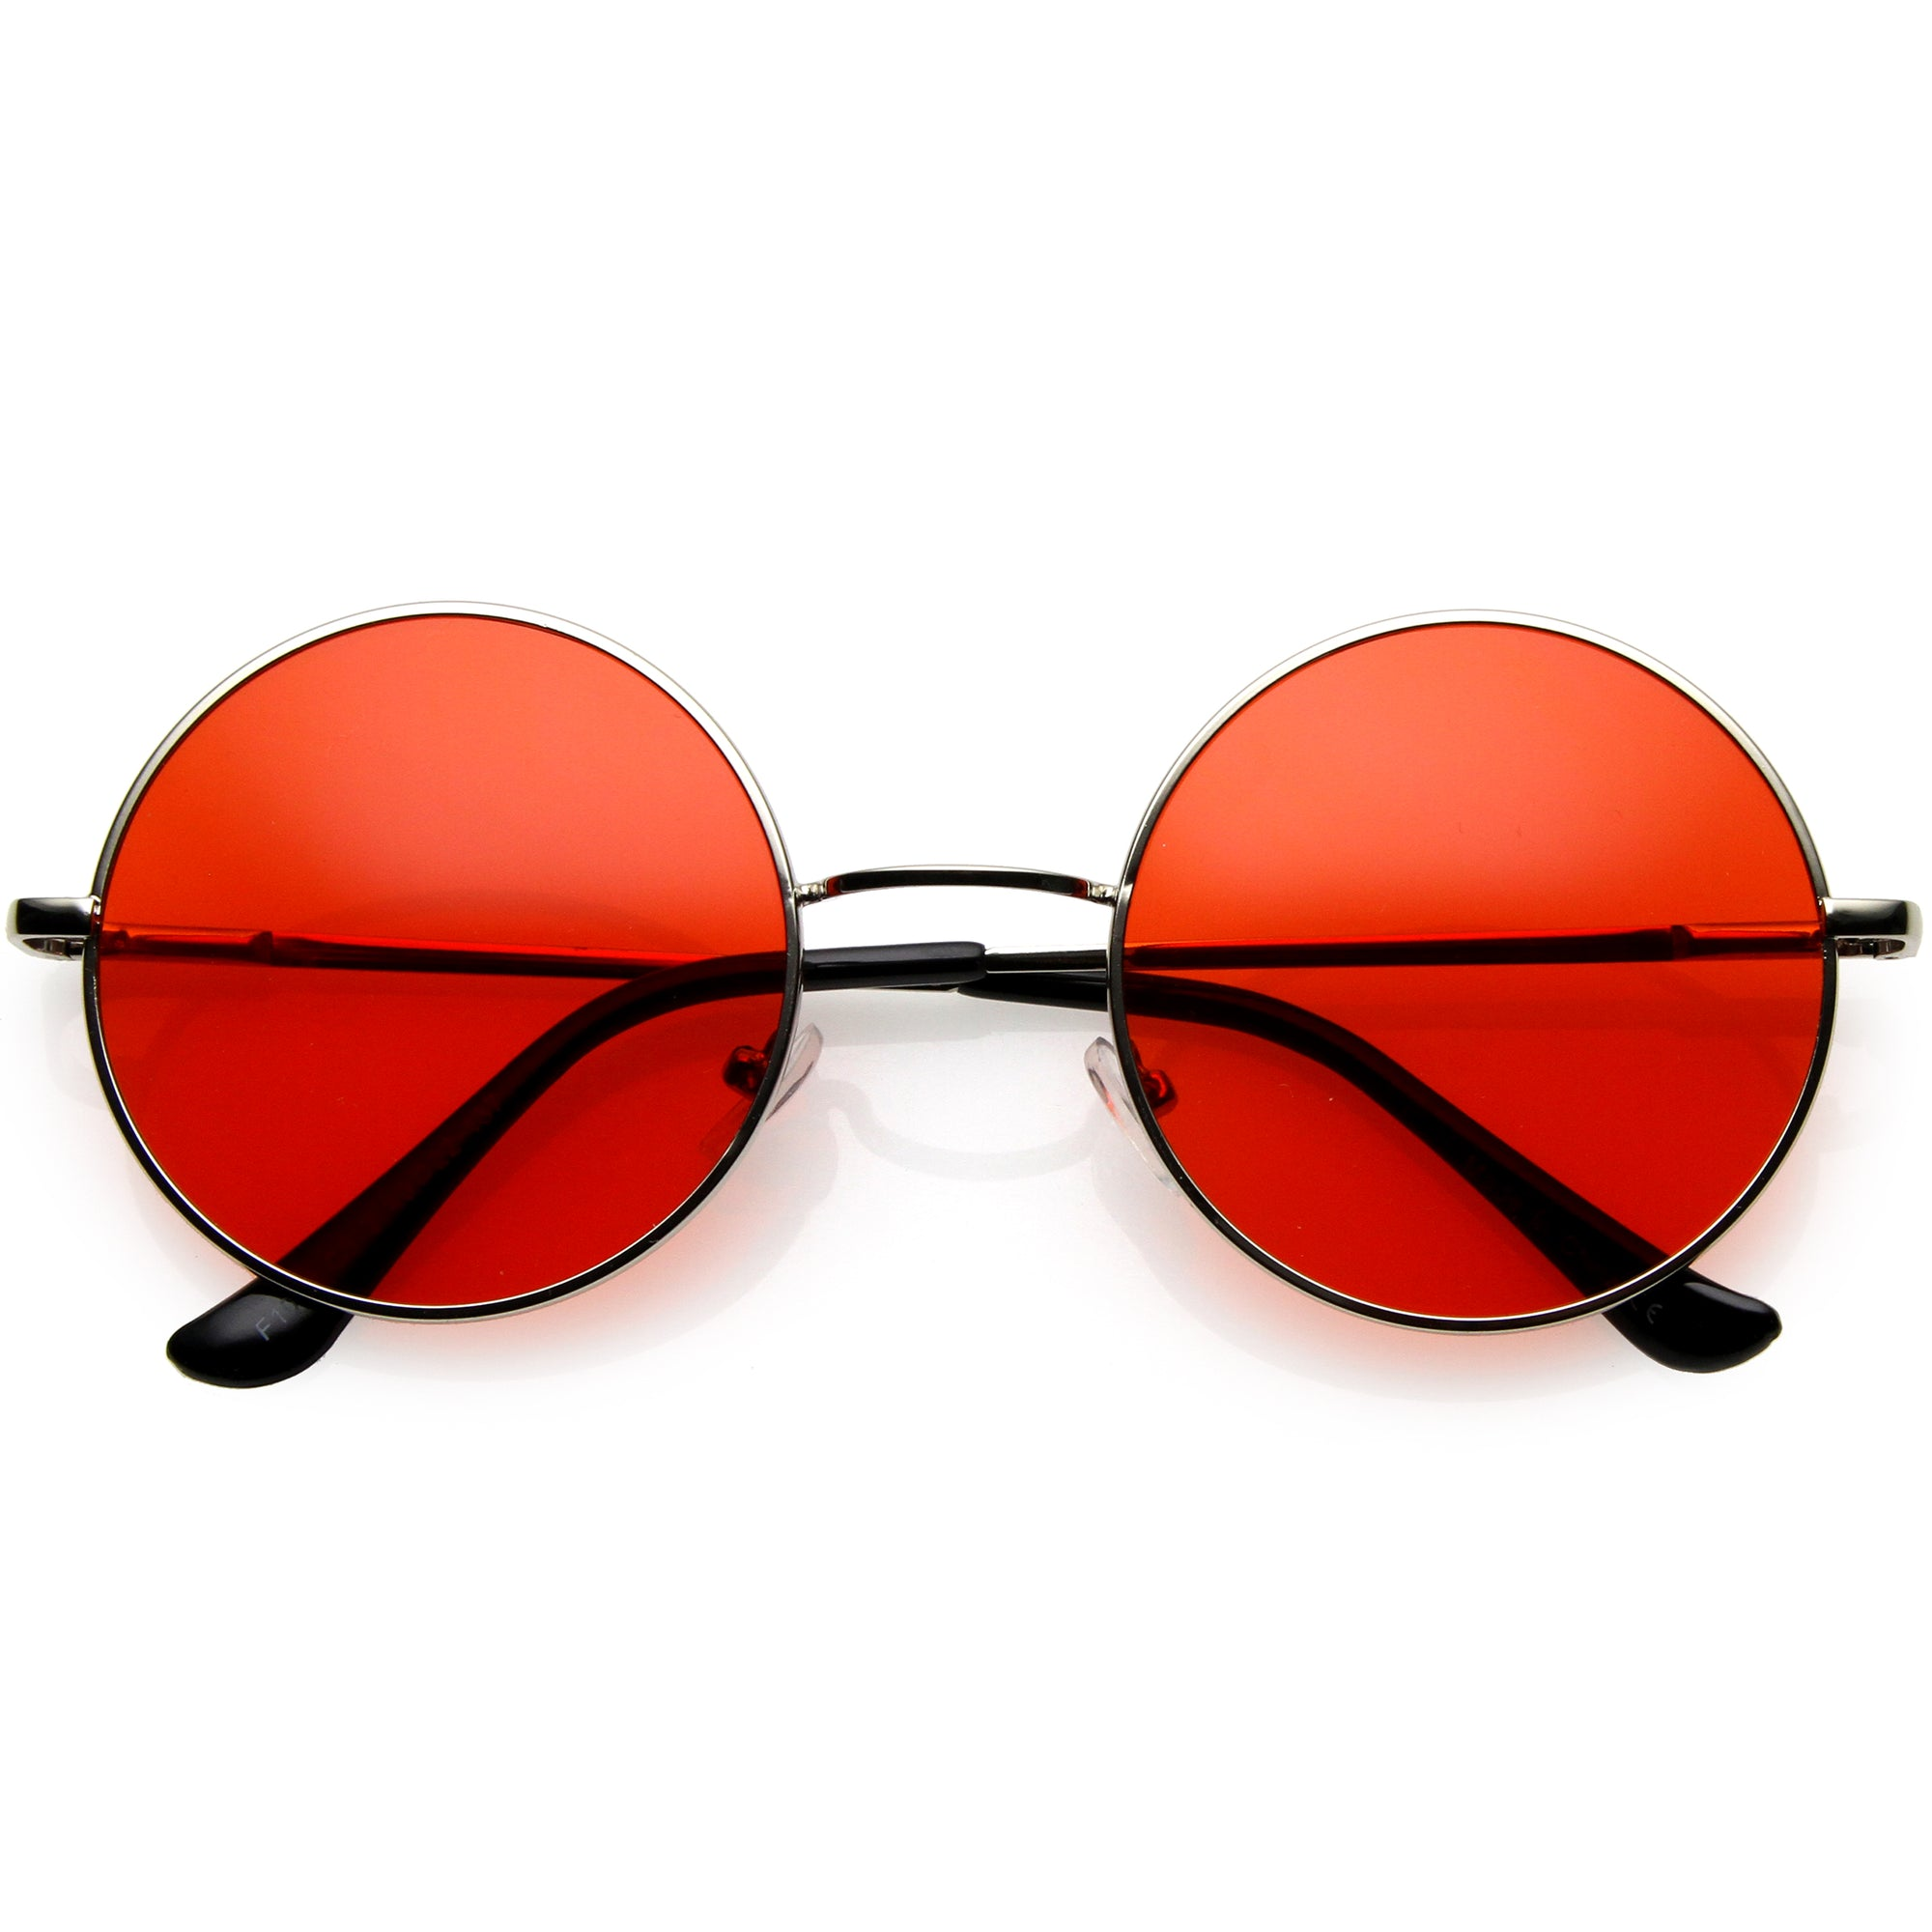 Classic Lennon Style Gradient Colored Lens Thin Metal Frame Round Sunglasses C990